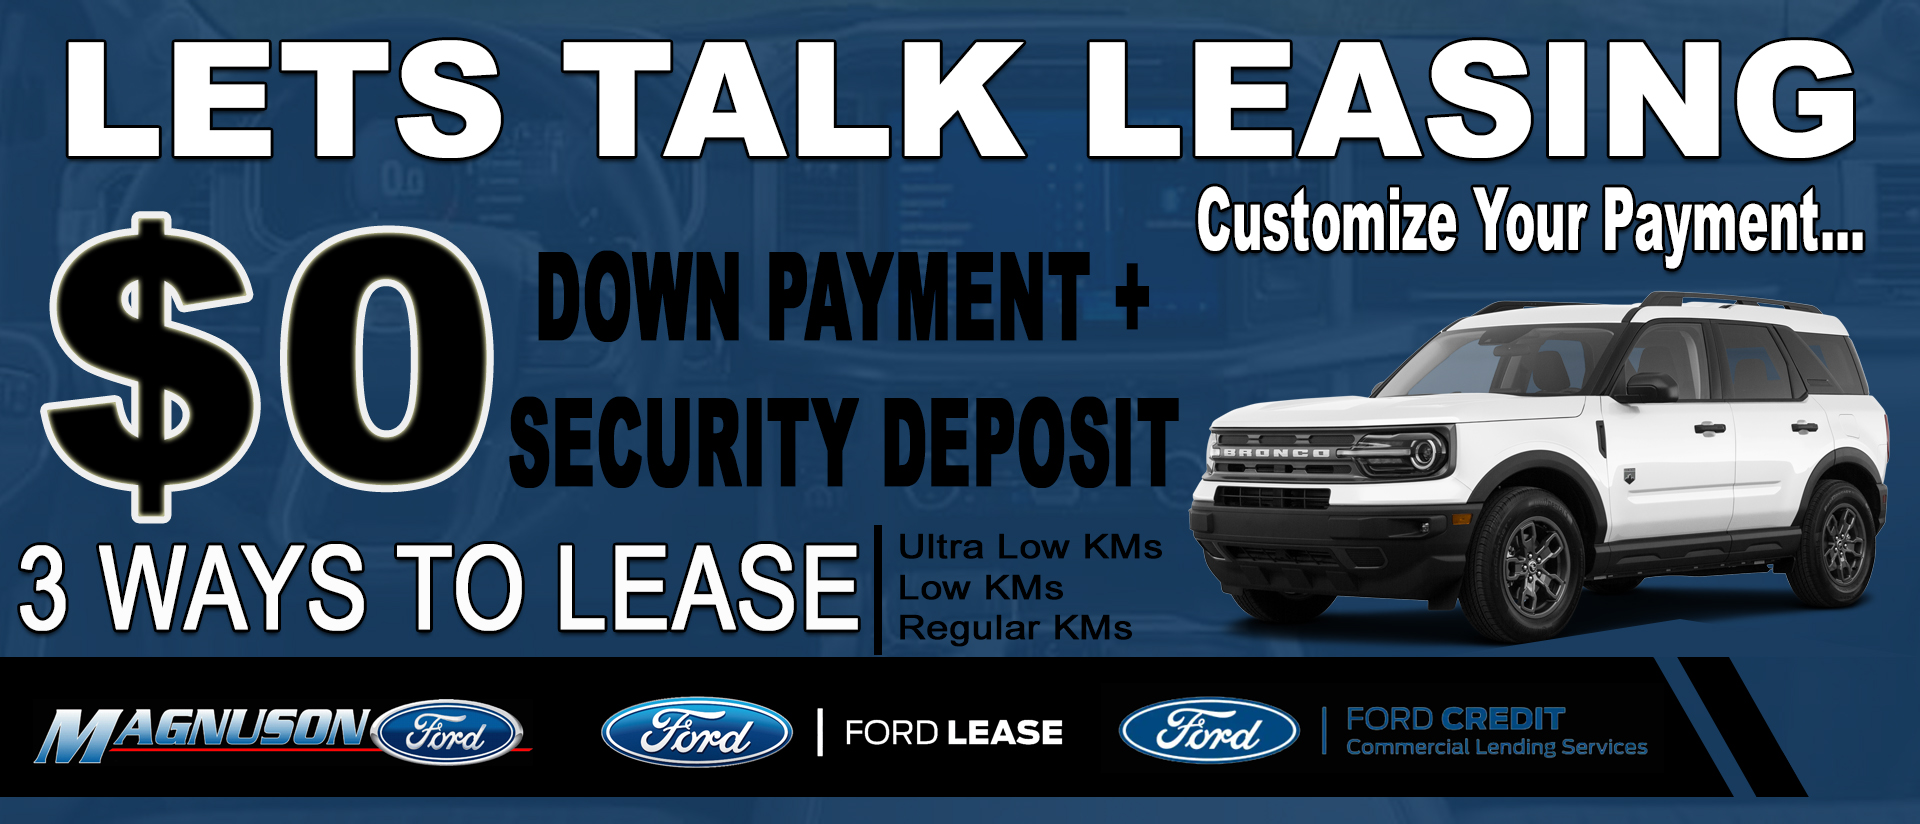 Lets Talk Leasing